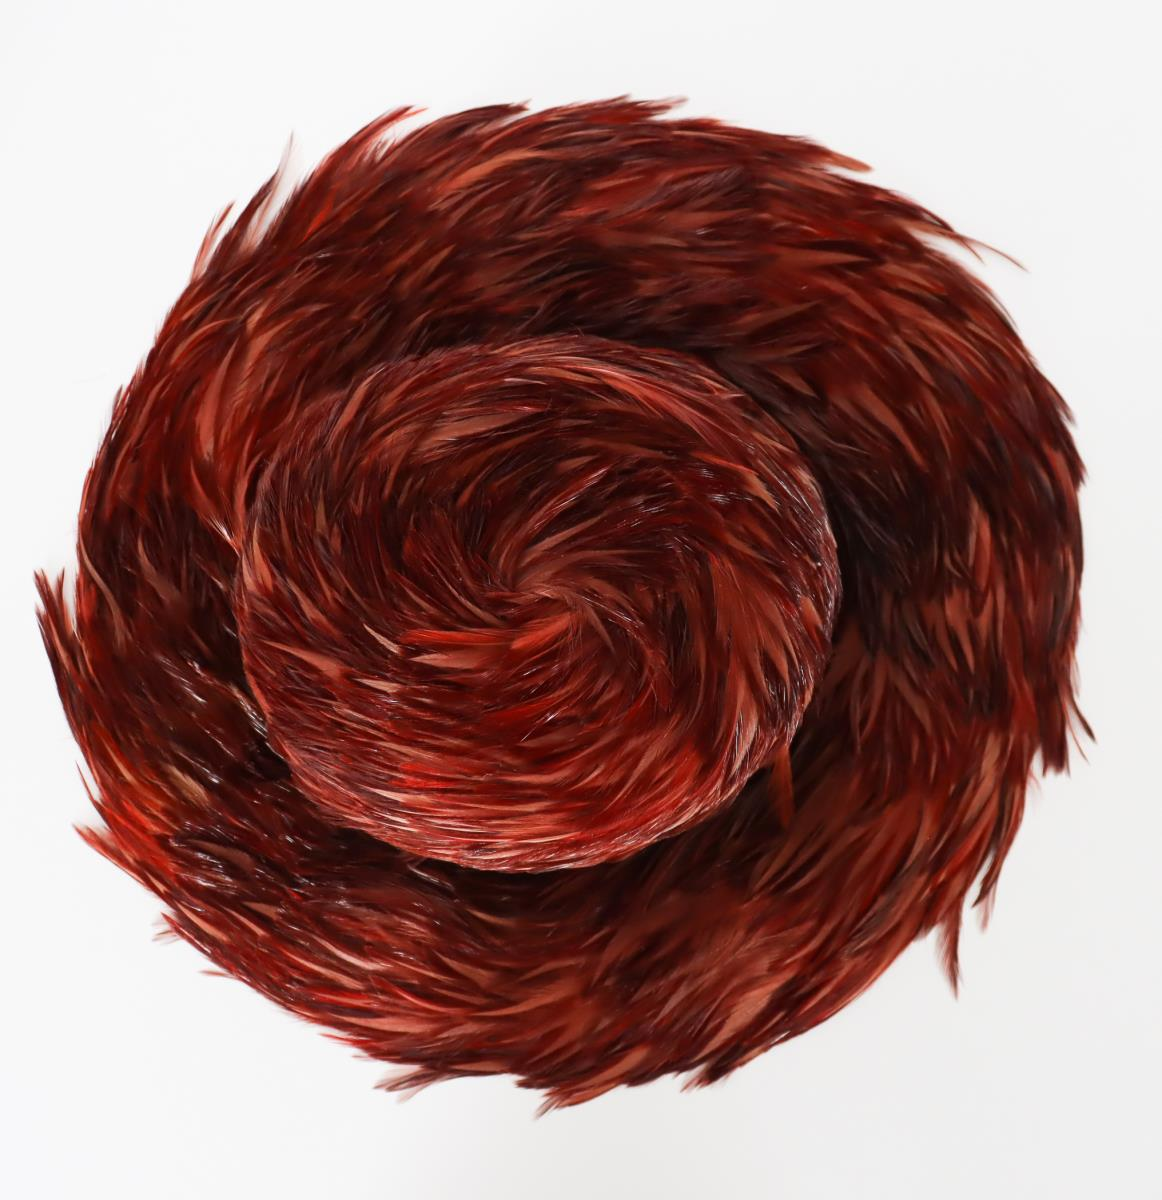 Patricia Underwood Feather Hat - Image 4 of 9